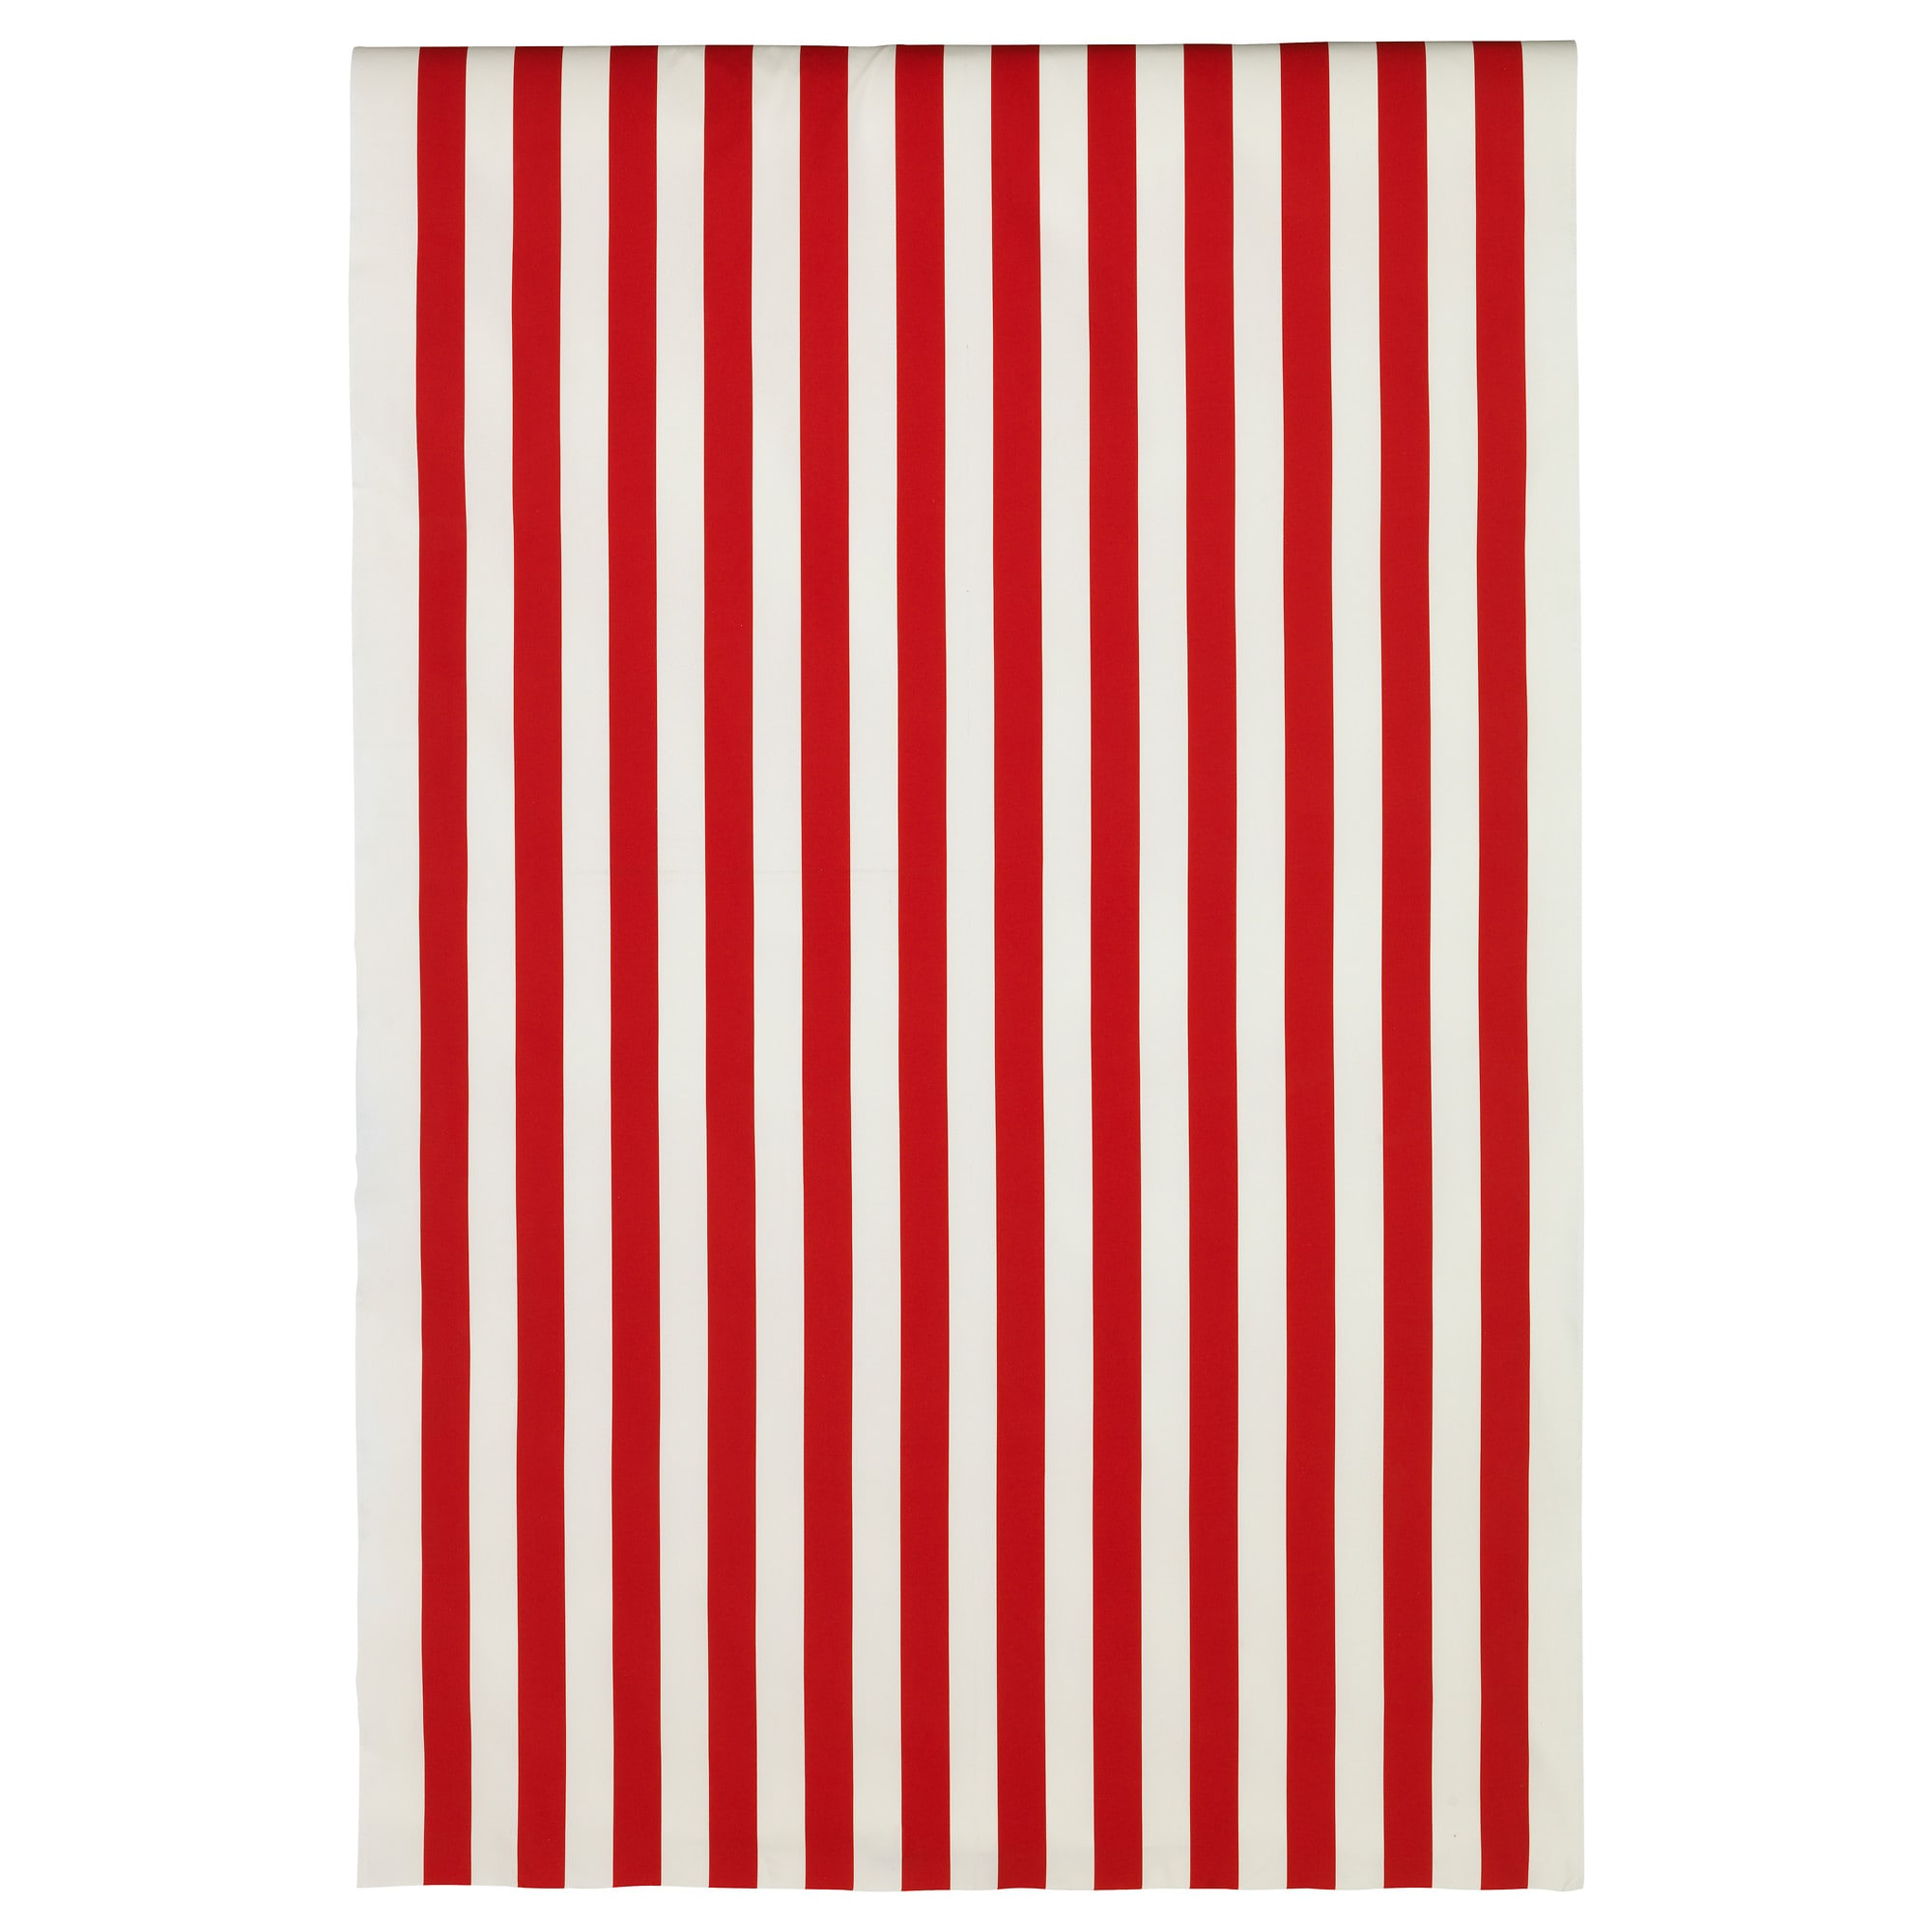 Ikea white curtains with red pattern - Ikea White Curtains With Red Pattern 4